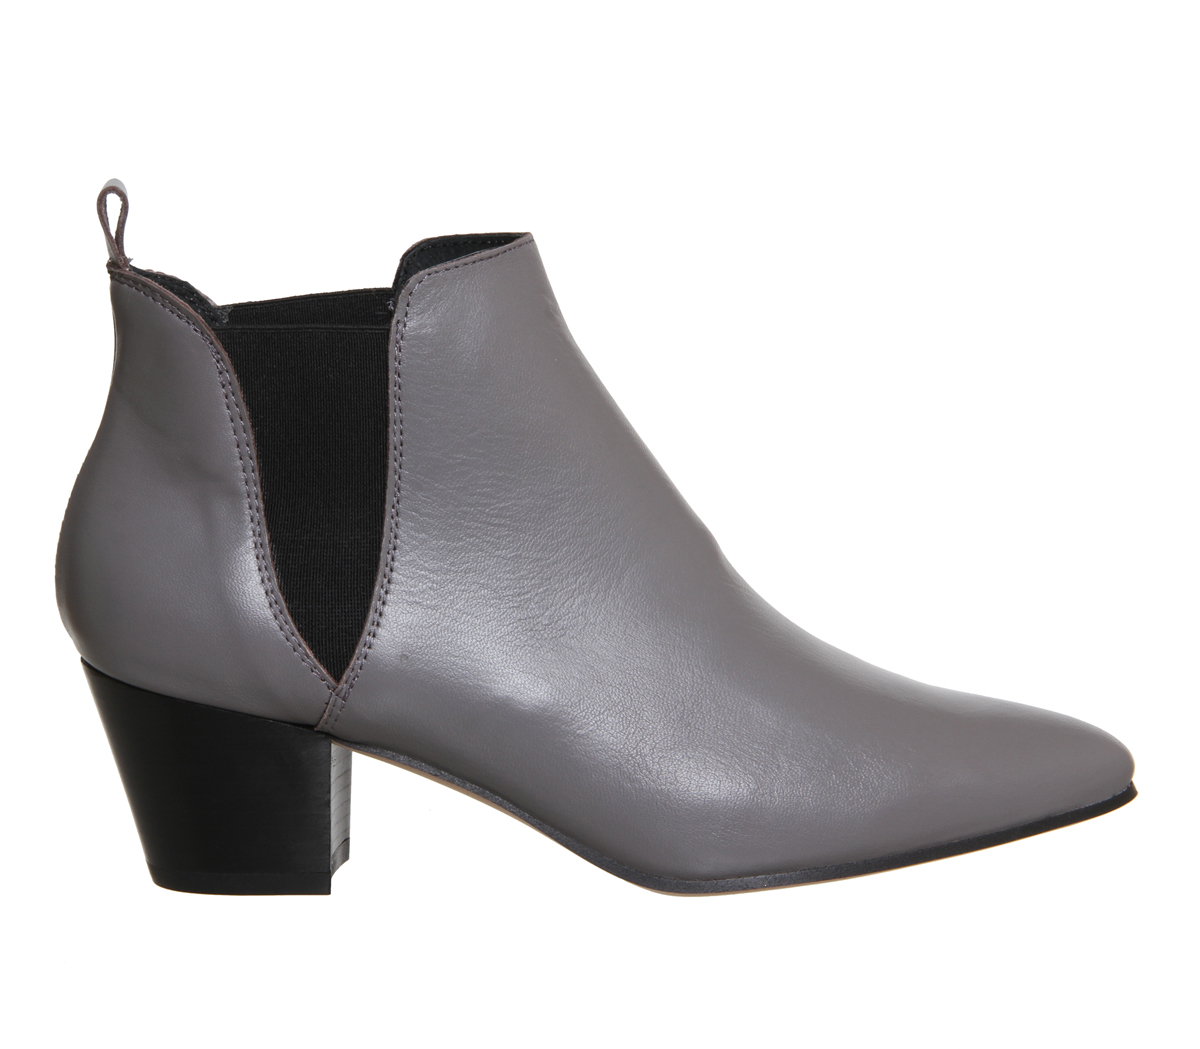 office coolcat almond toe chelsea boots in gray lyst. Black Bedroom Furniture Sets. Home Design Ideas